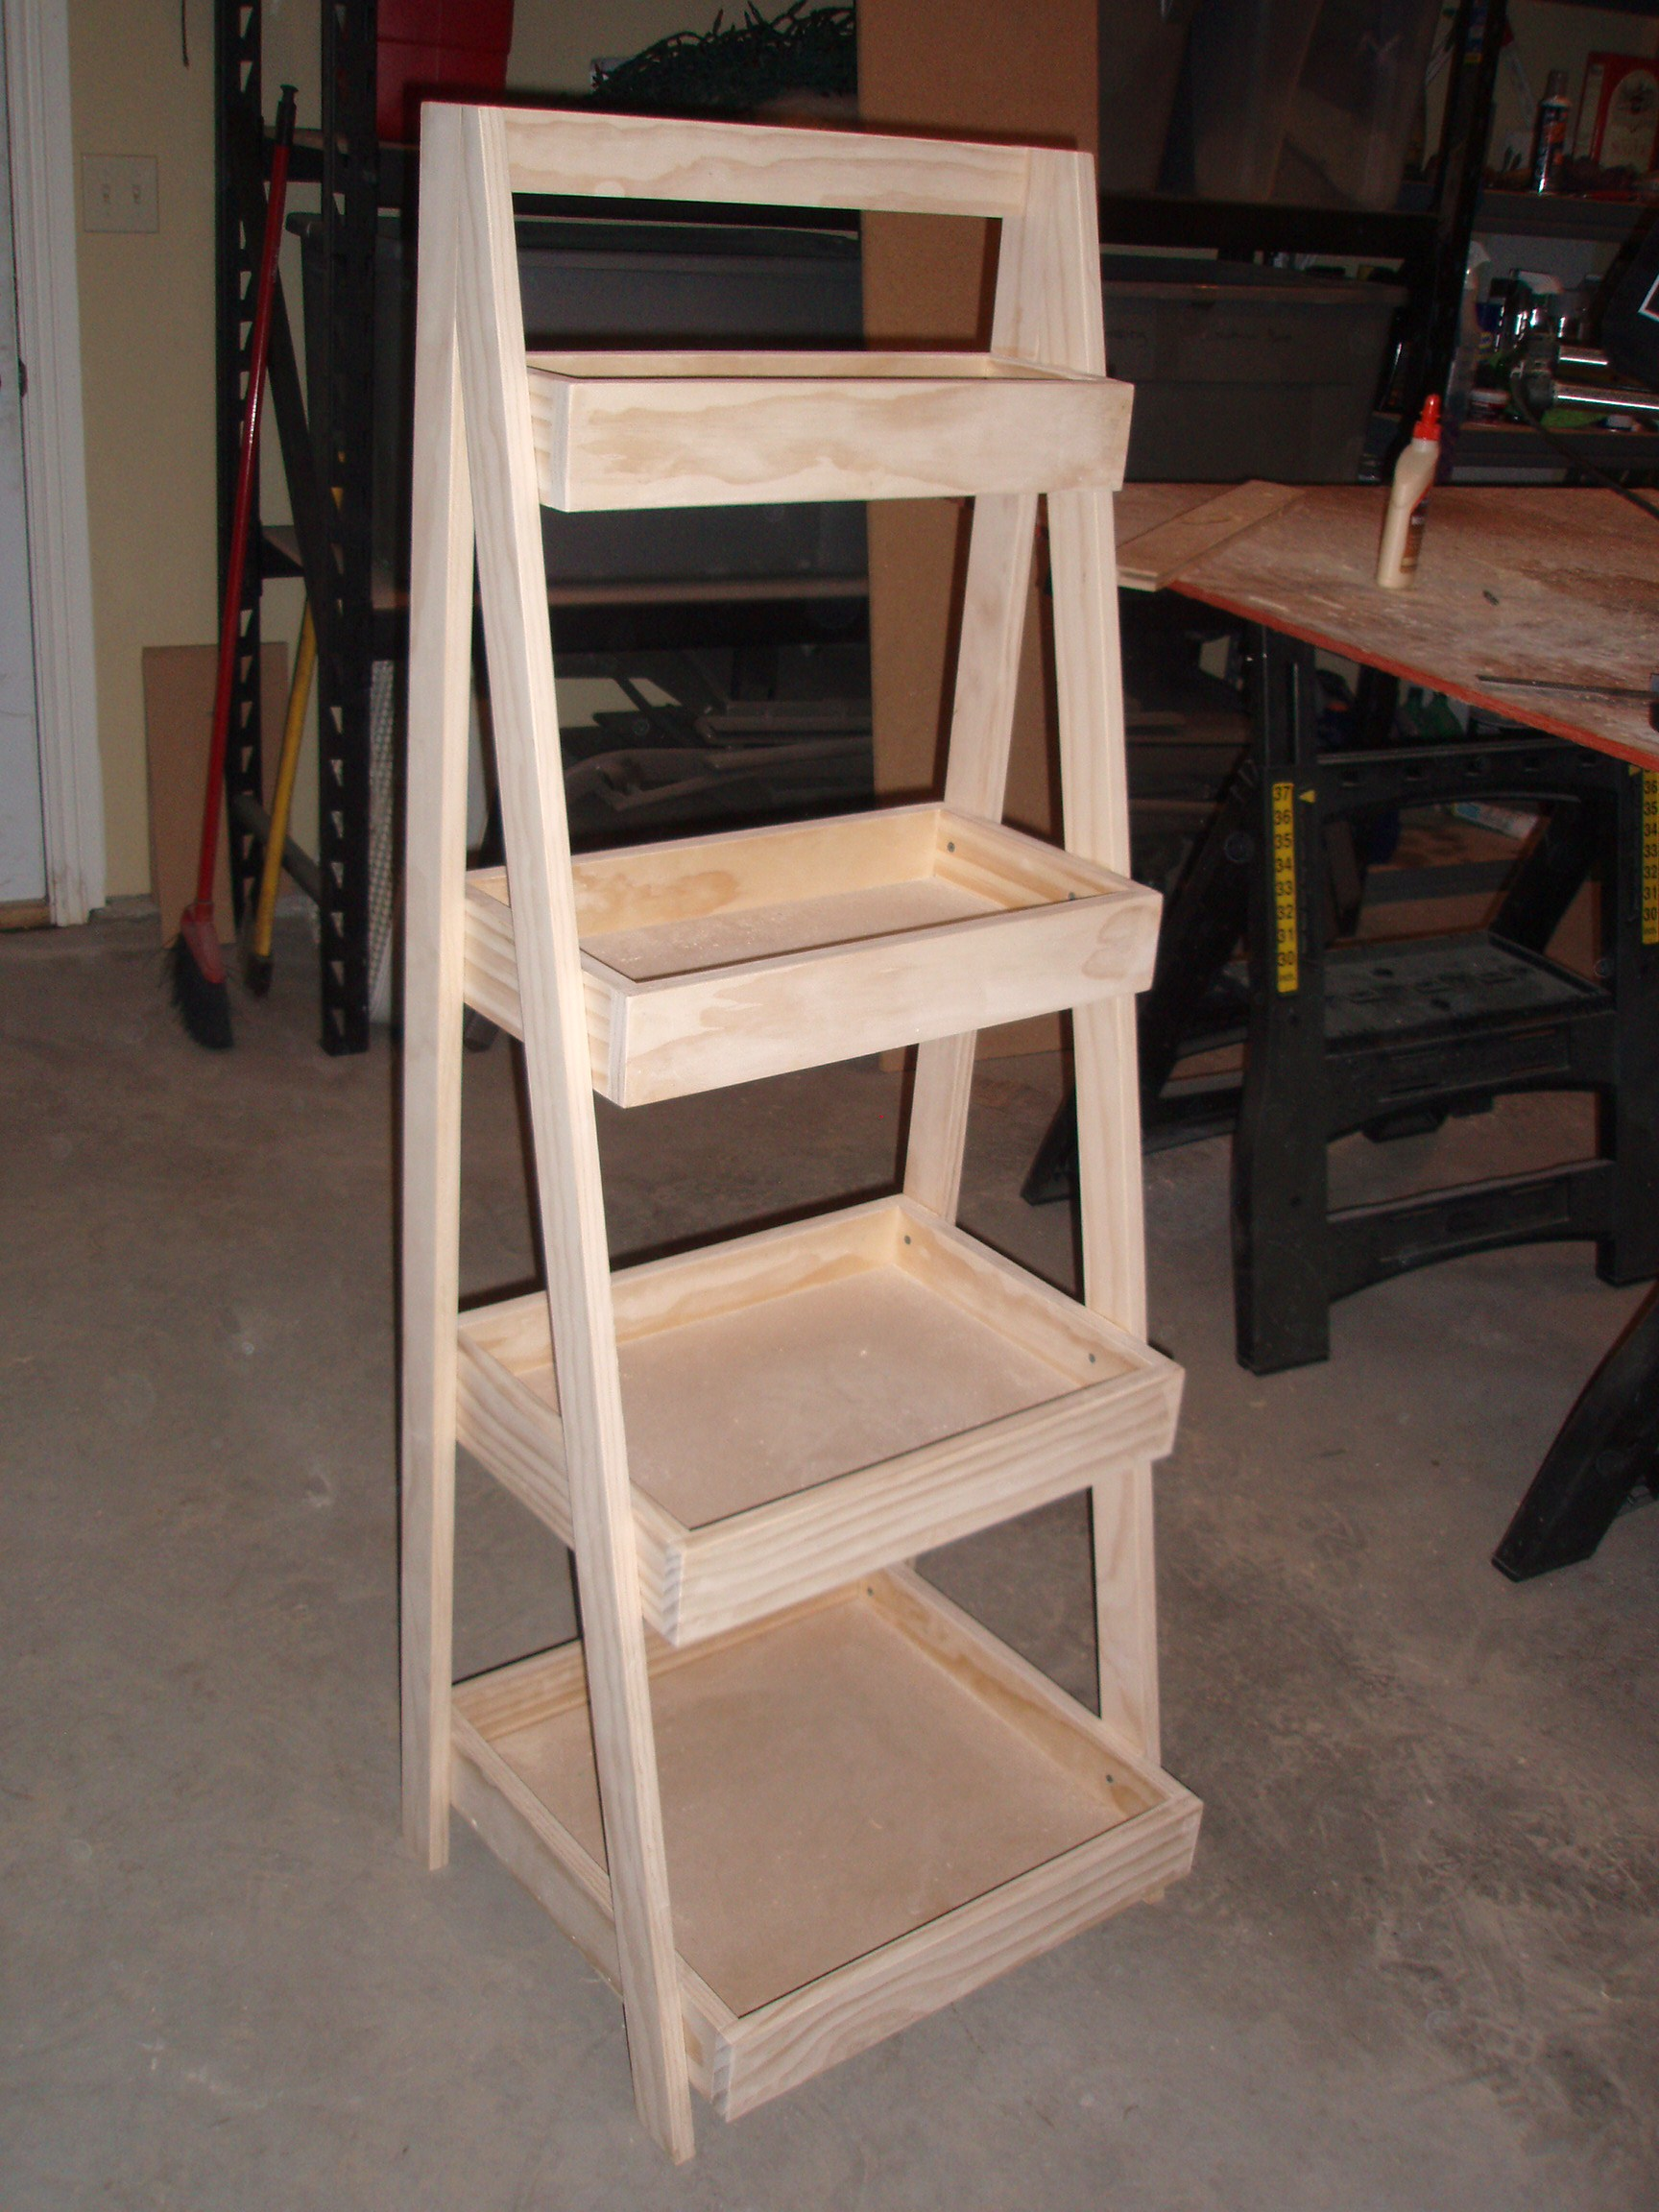 Ana white our new ladder shelf diy projects for Build ladder shelf plans